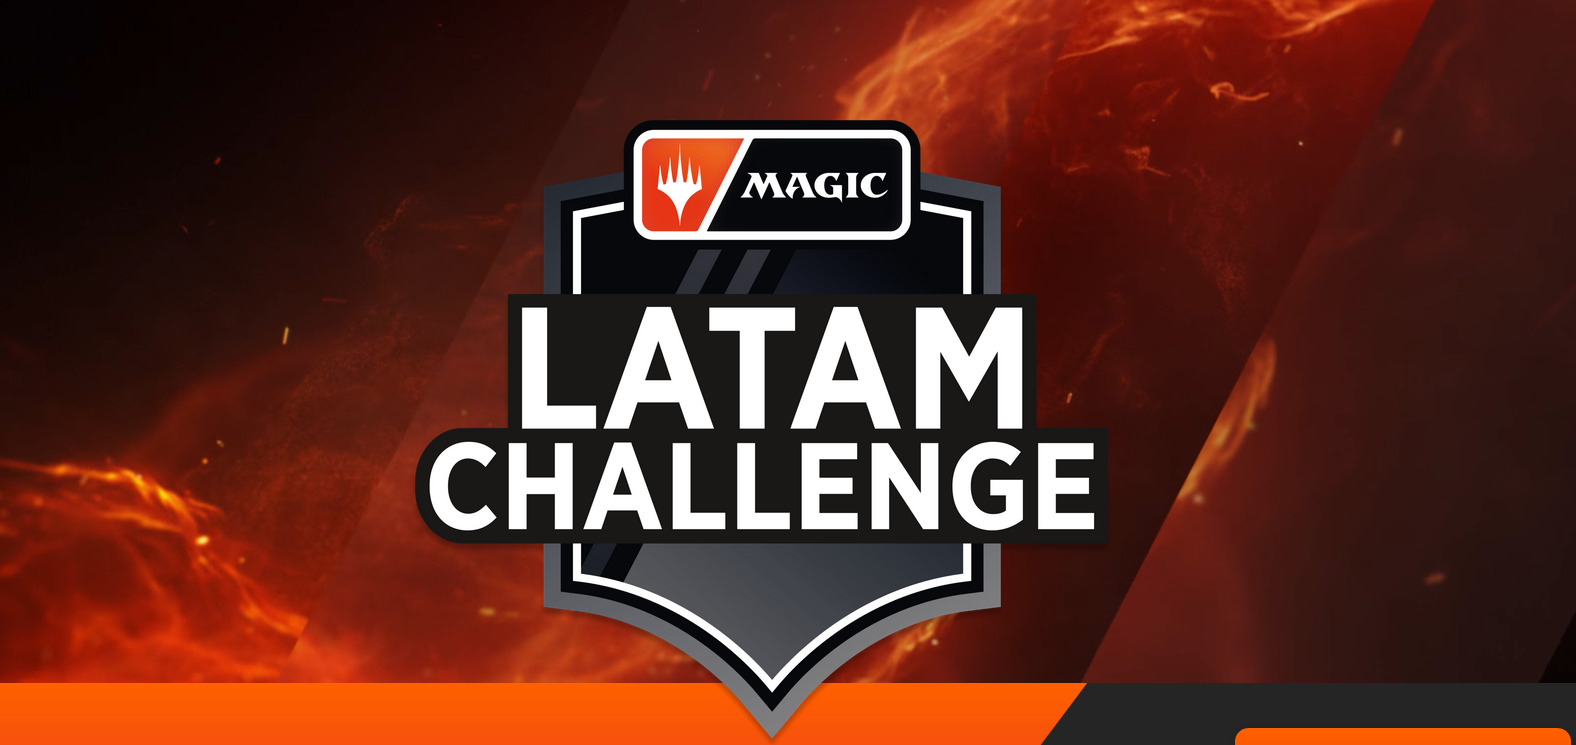 Magic: The Gathering Latam Challenge começa dia 21 de novembro